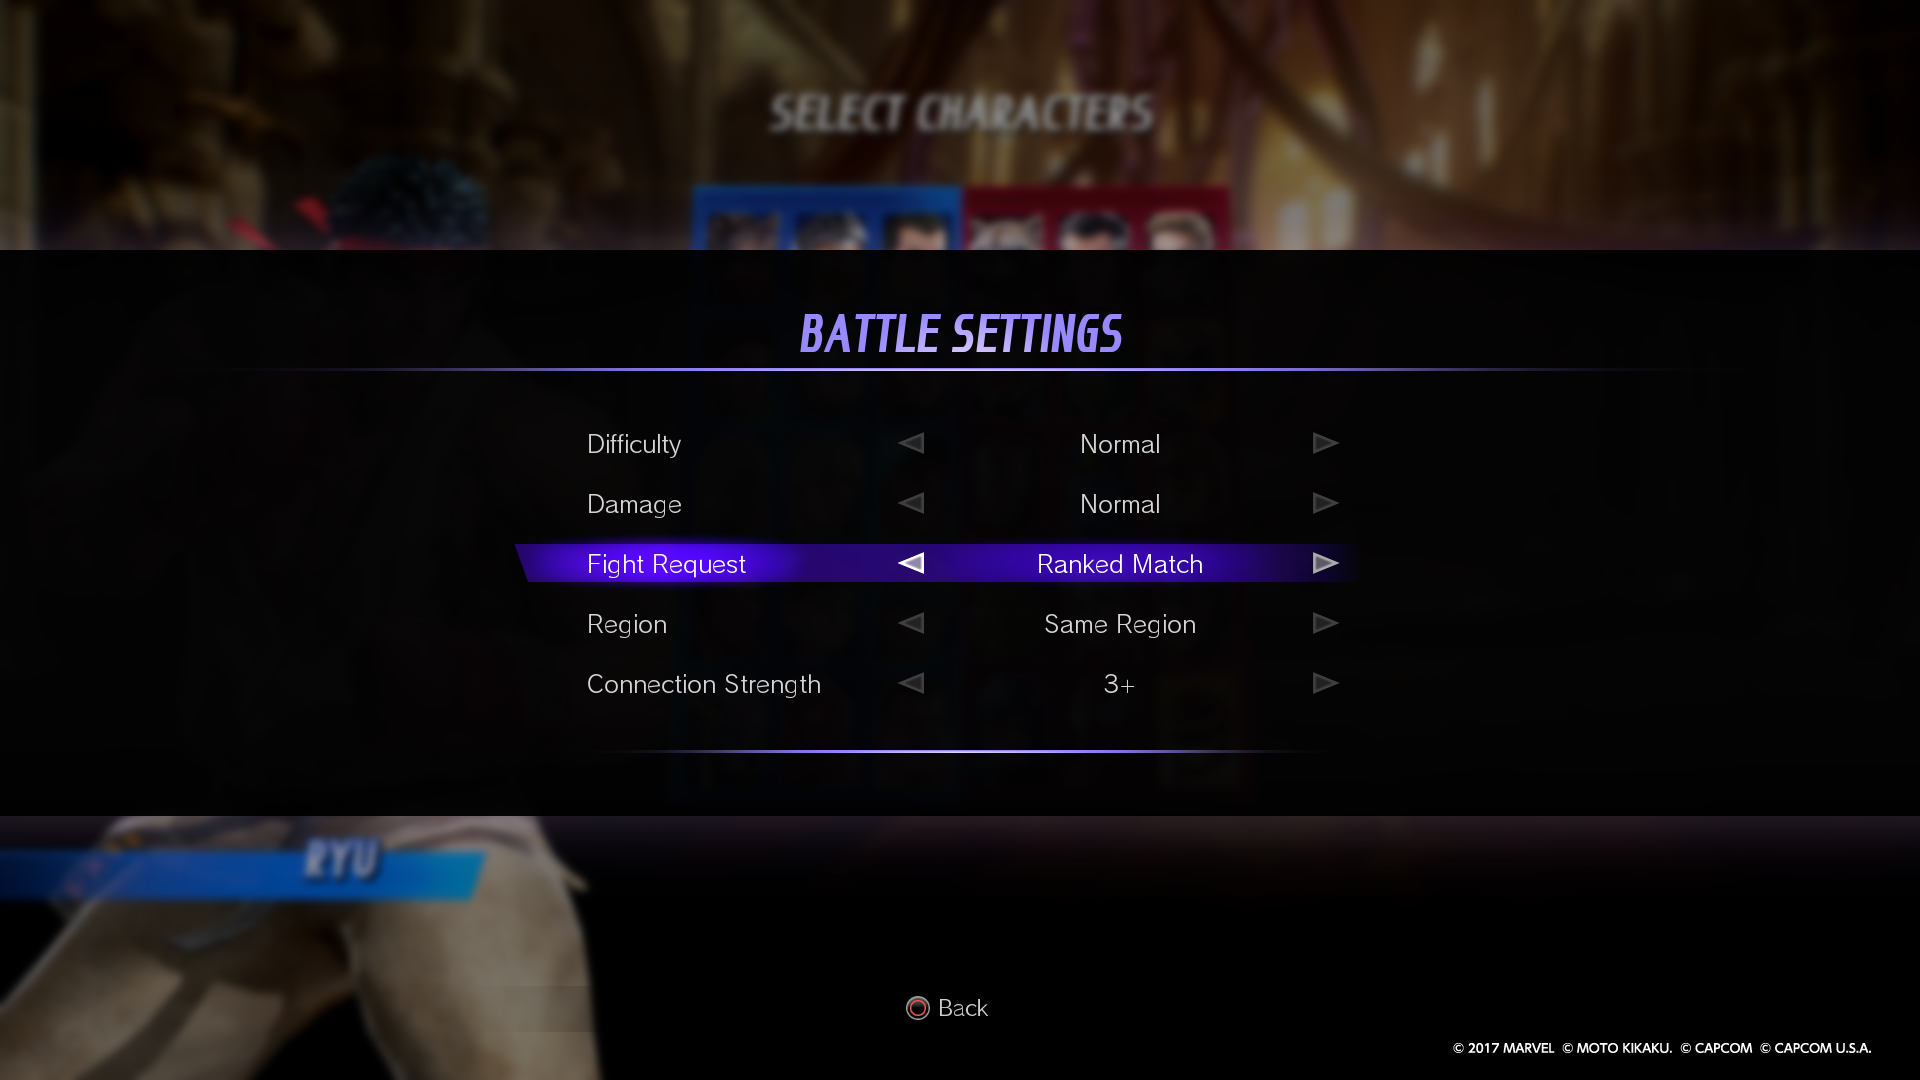 Marvel Vs Capcom Infinite Official Web Manual Online Mode Ps4 Reg 3 During Arcade Or Training You Can Enable Fight Request To Accept Connections Other Users For Battles Settings Be Found In